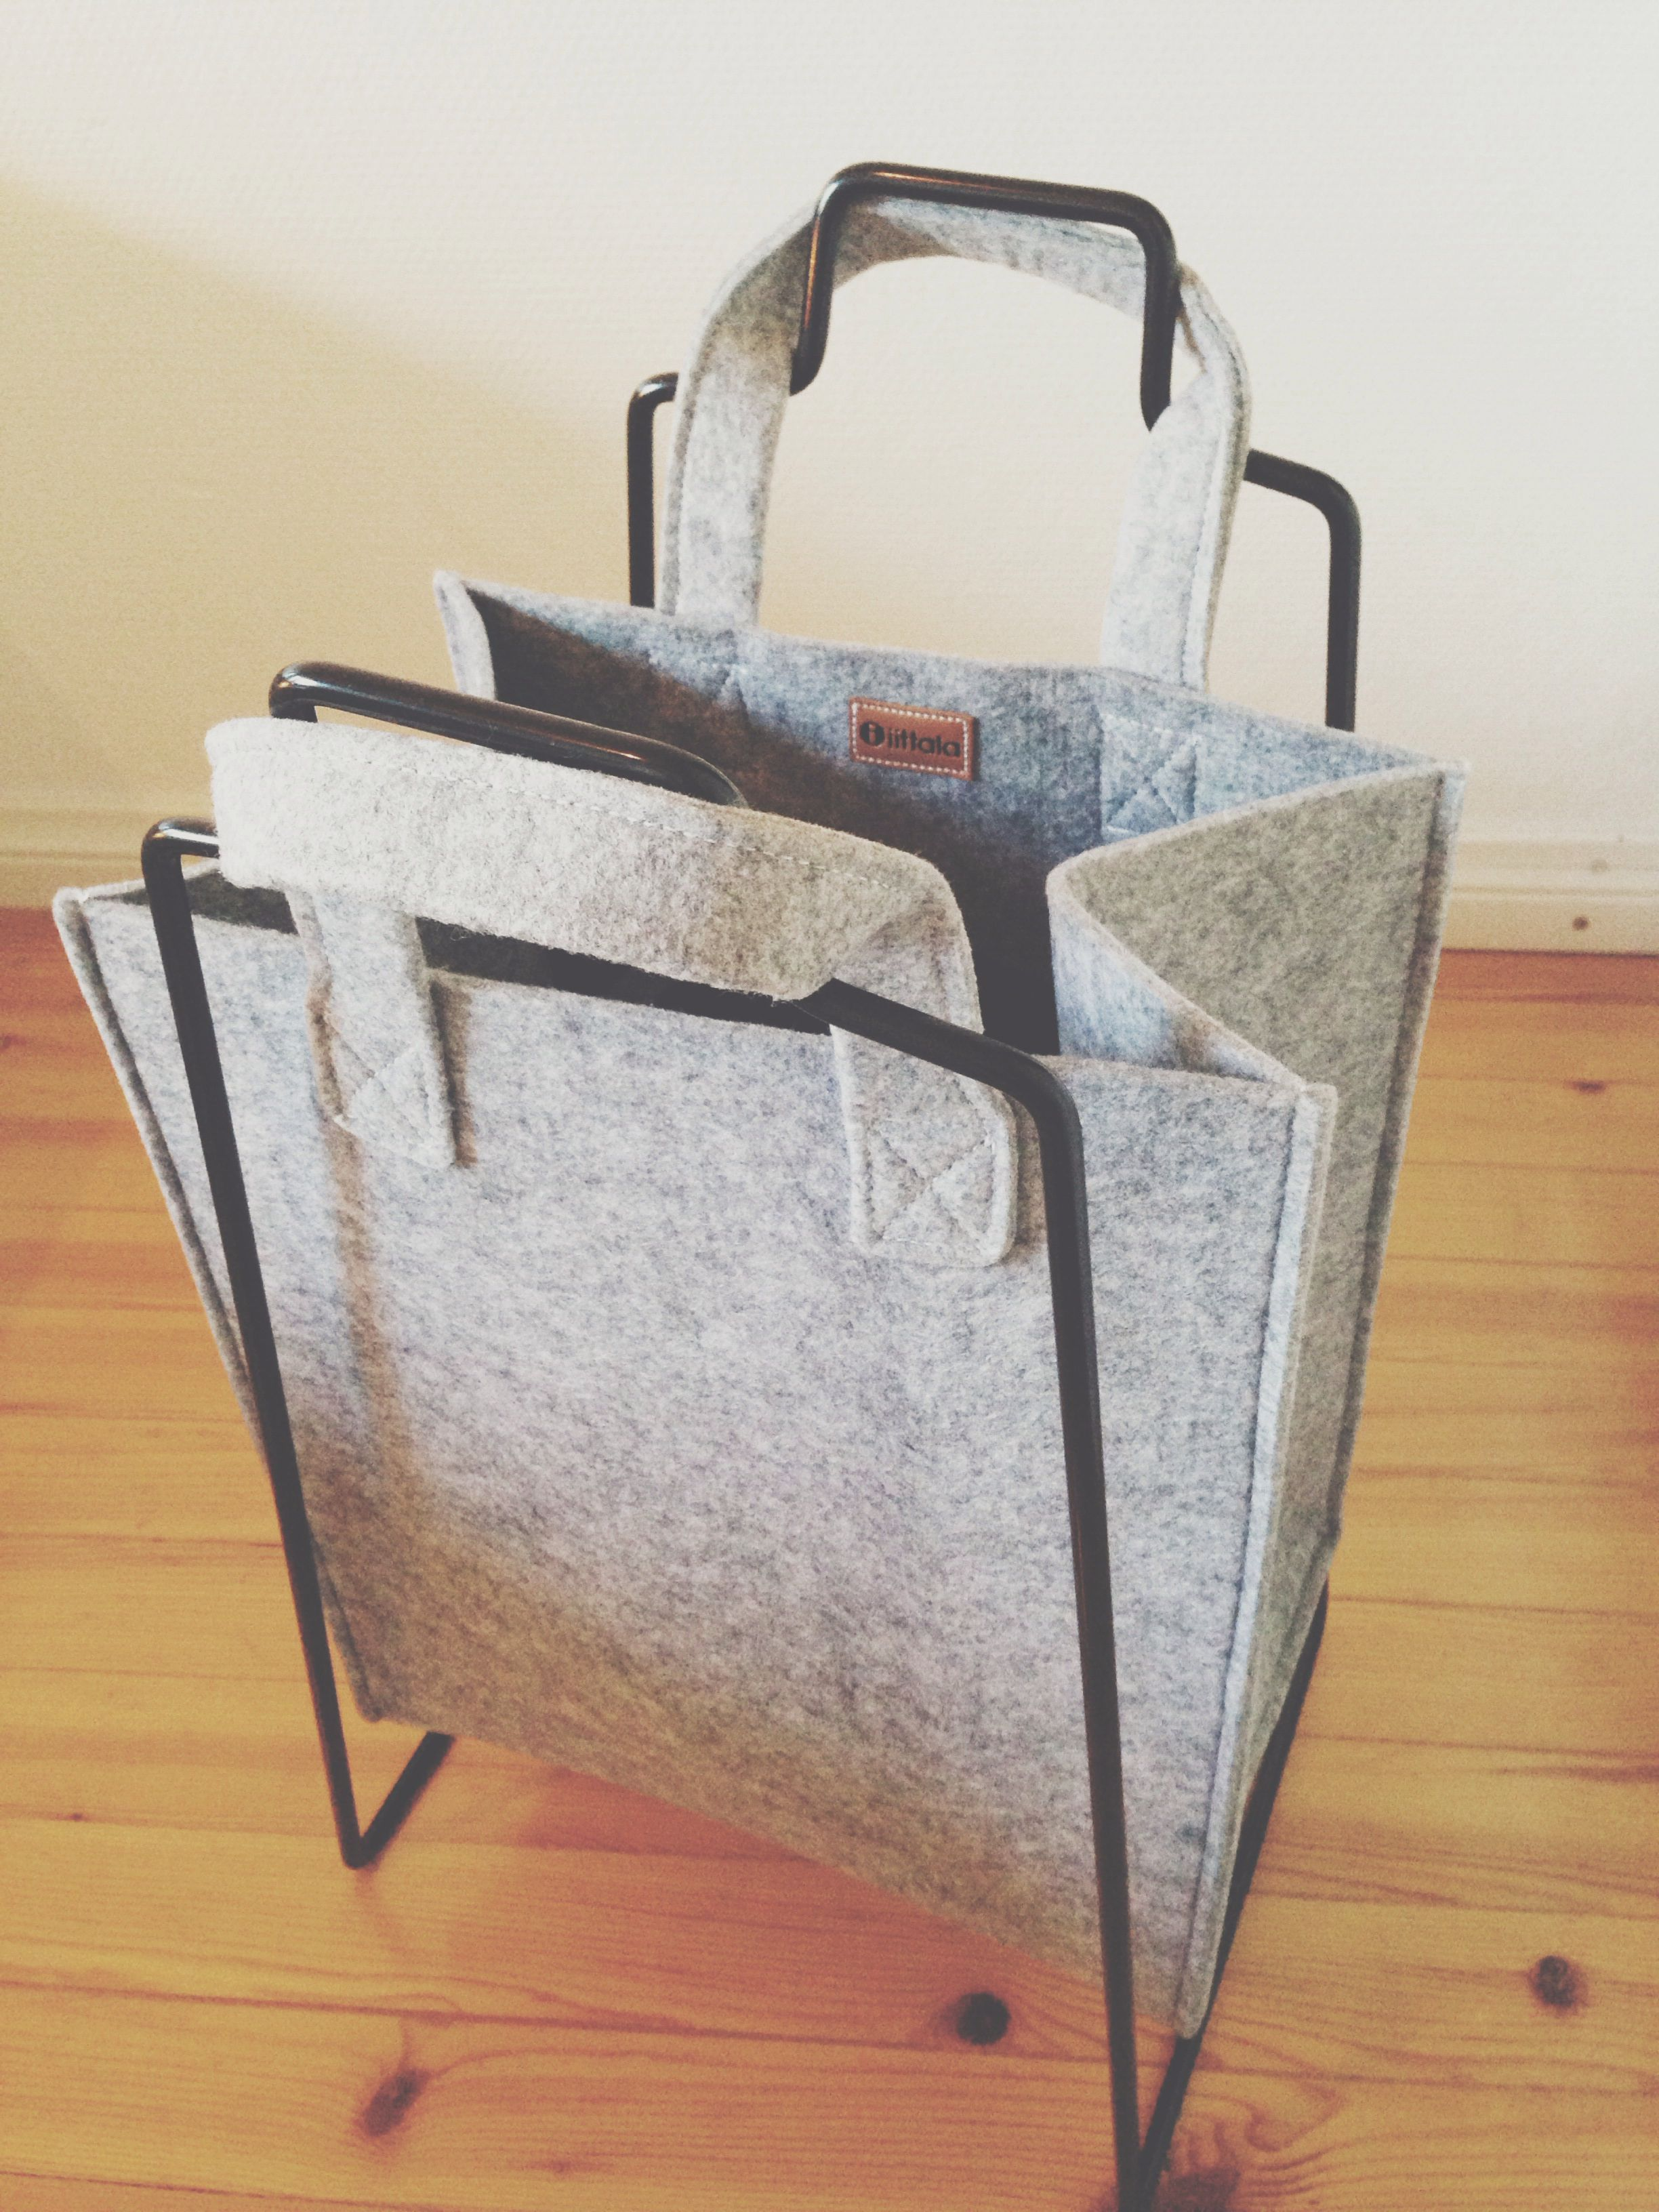 laundry bag, everyday design and Harri Koskinen for Iittala Meno felt bag